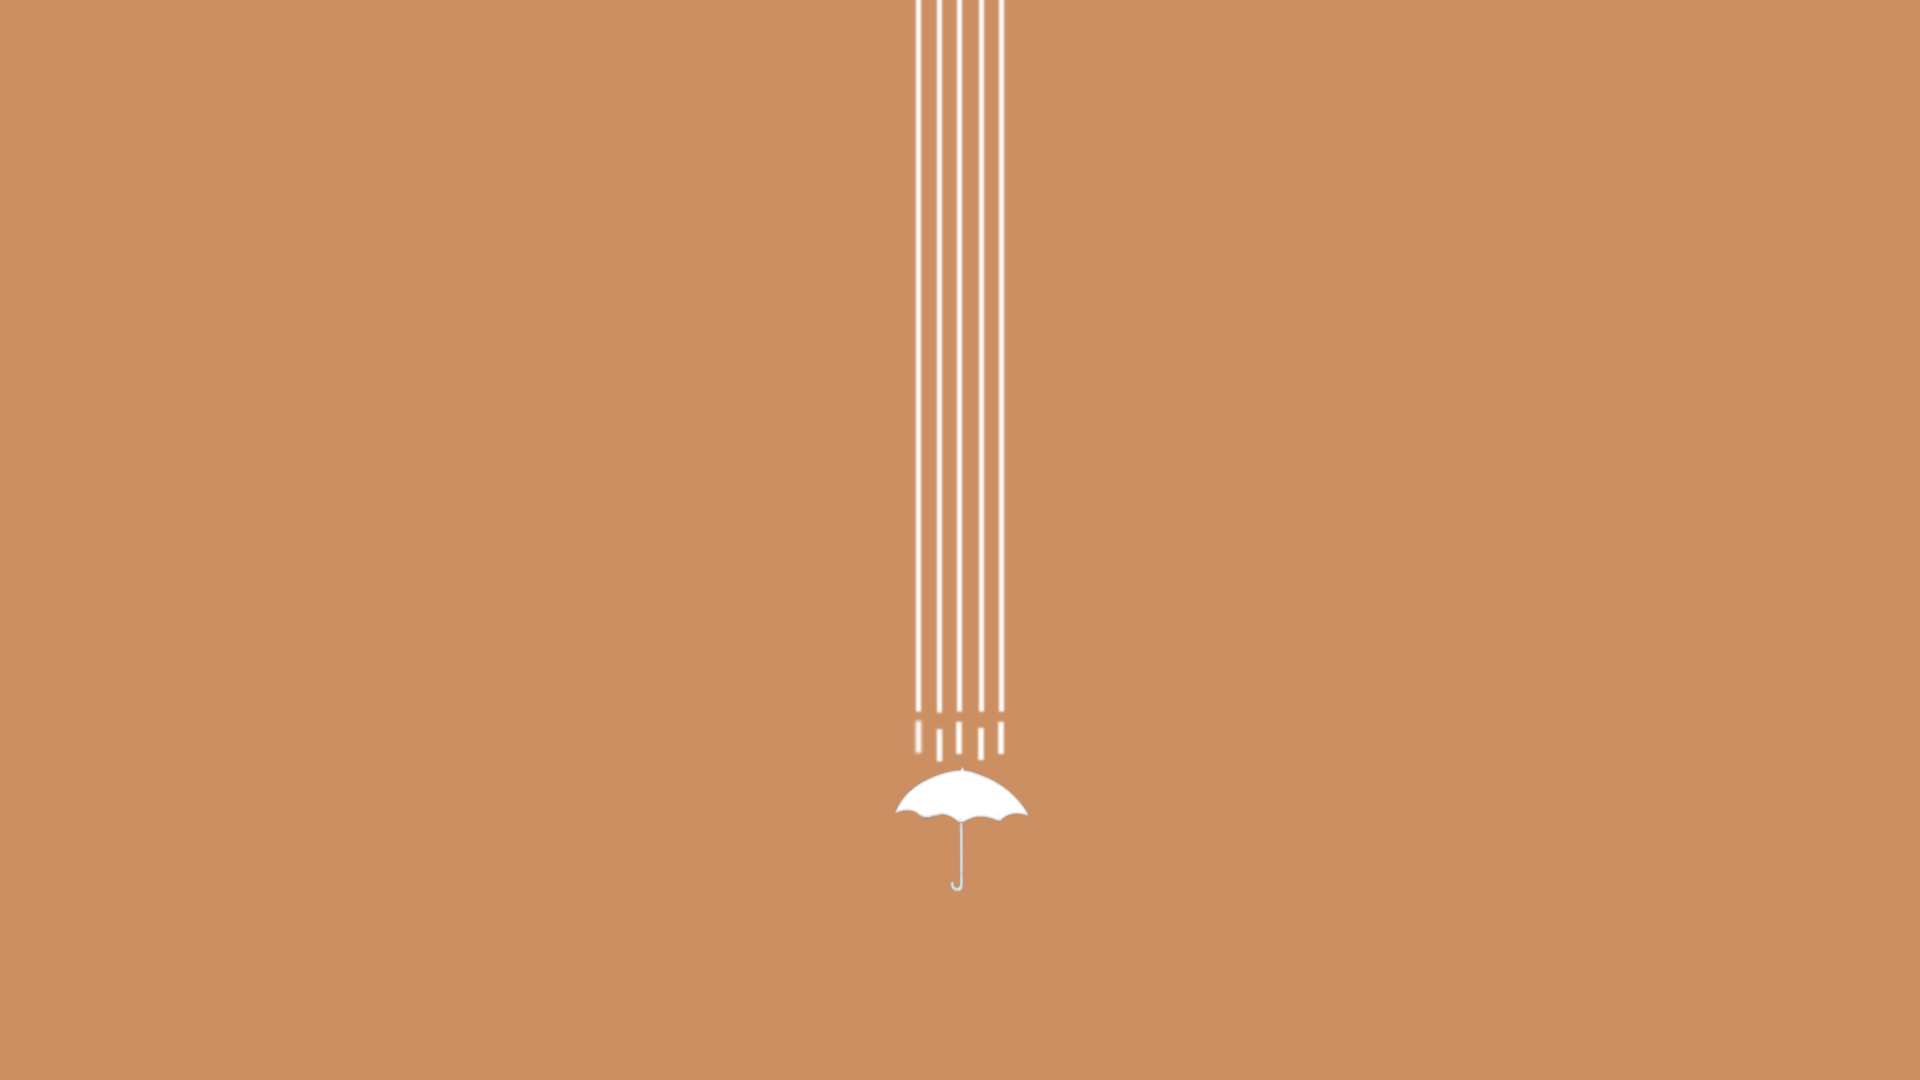 Minimalist wallpaper headphones umbrella art 1315618 for What is a minimalist